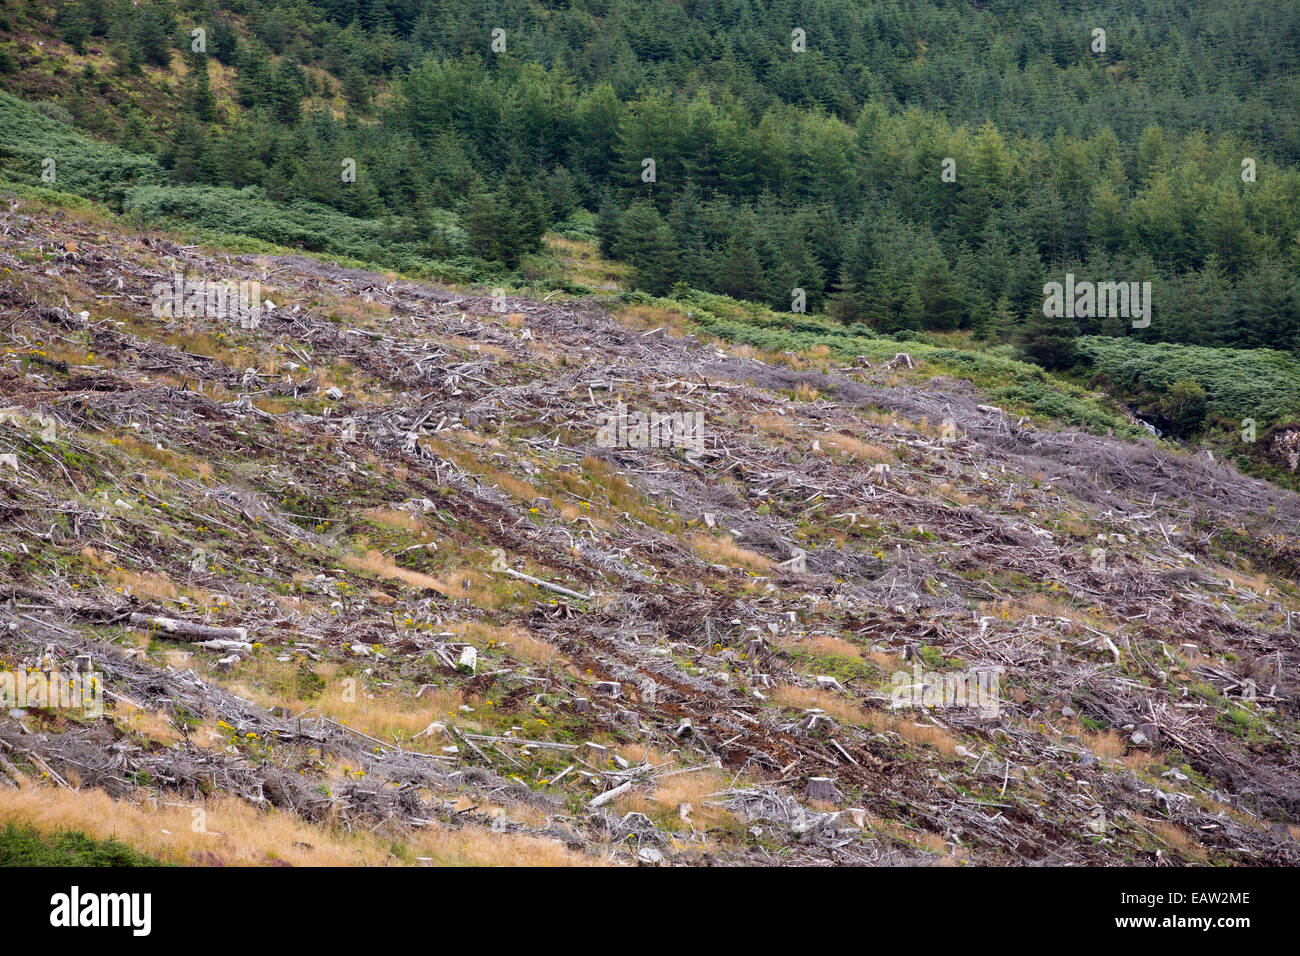 Clear felled conifer plantation trees alongside Loch Frisa on Mull, Scotland, UK. - Stock Image